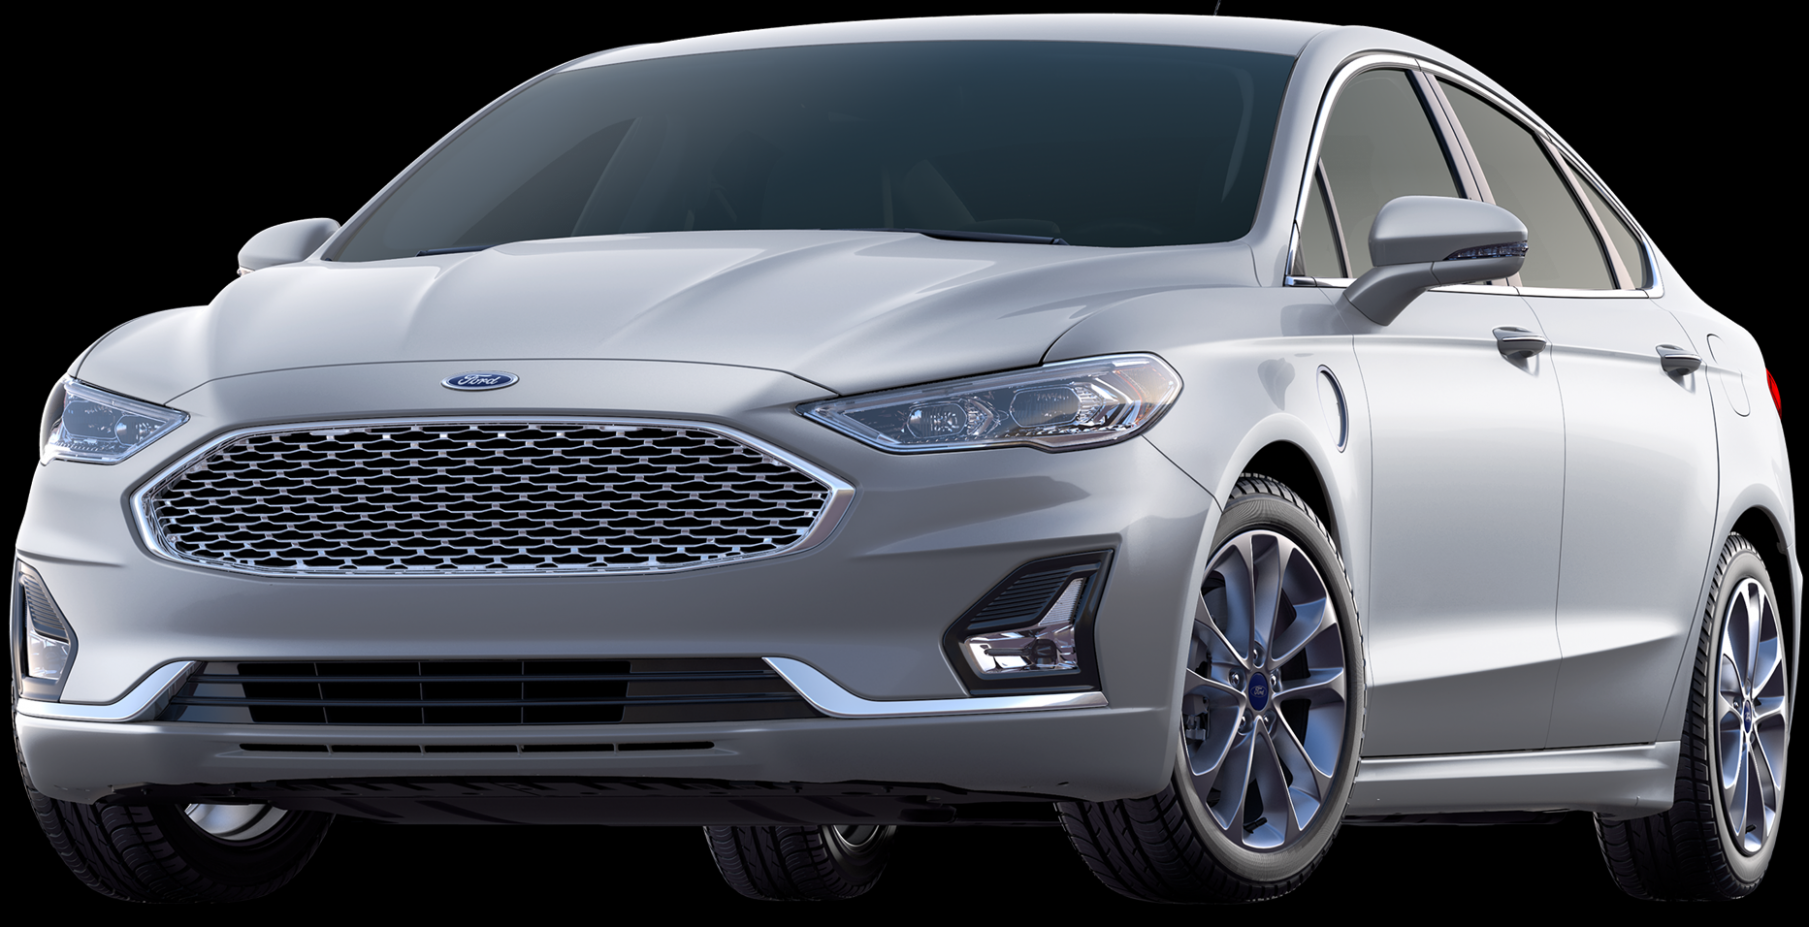 6 Ford Fusion Energi Incentives, Specials & Offers in Lock Haven PA